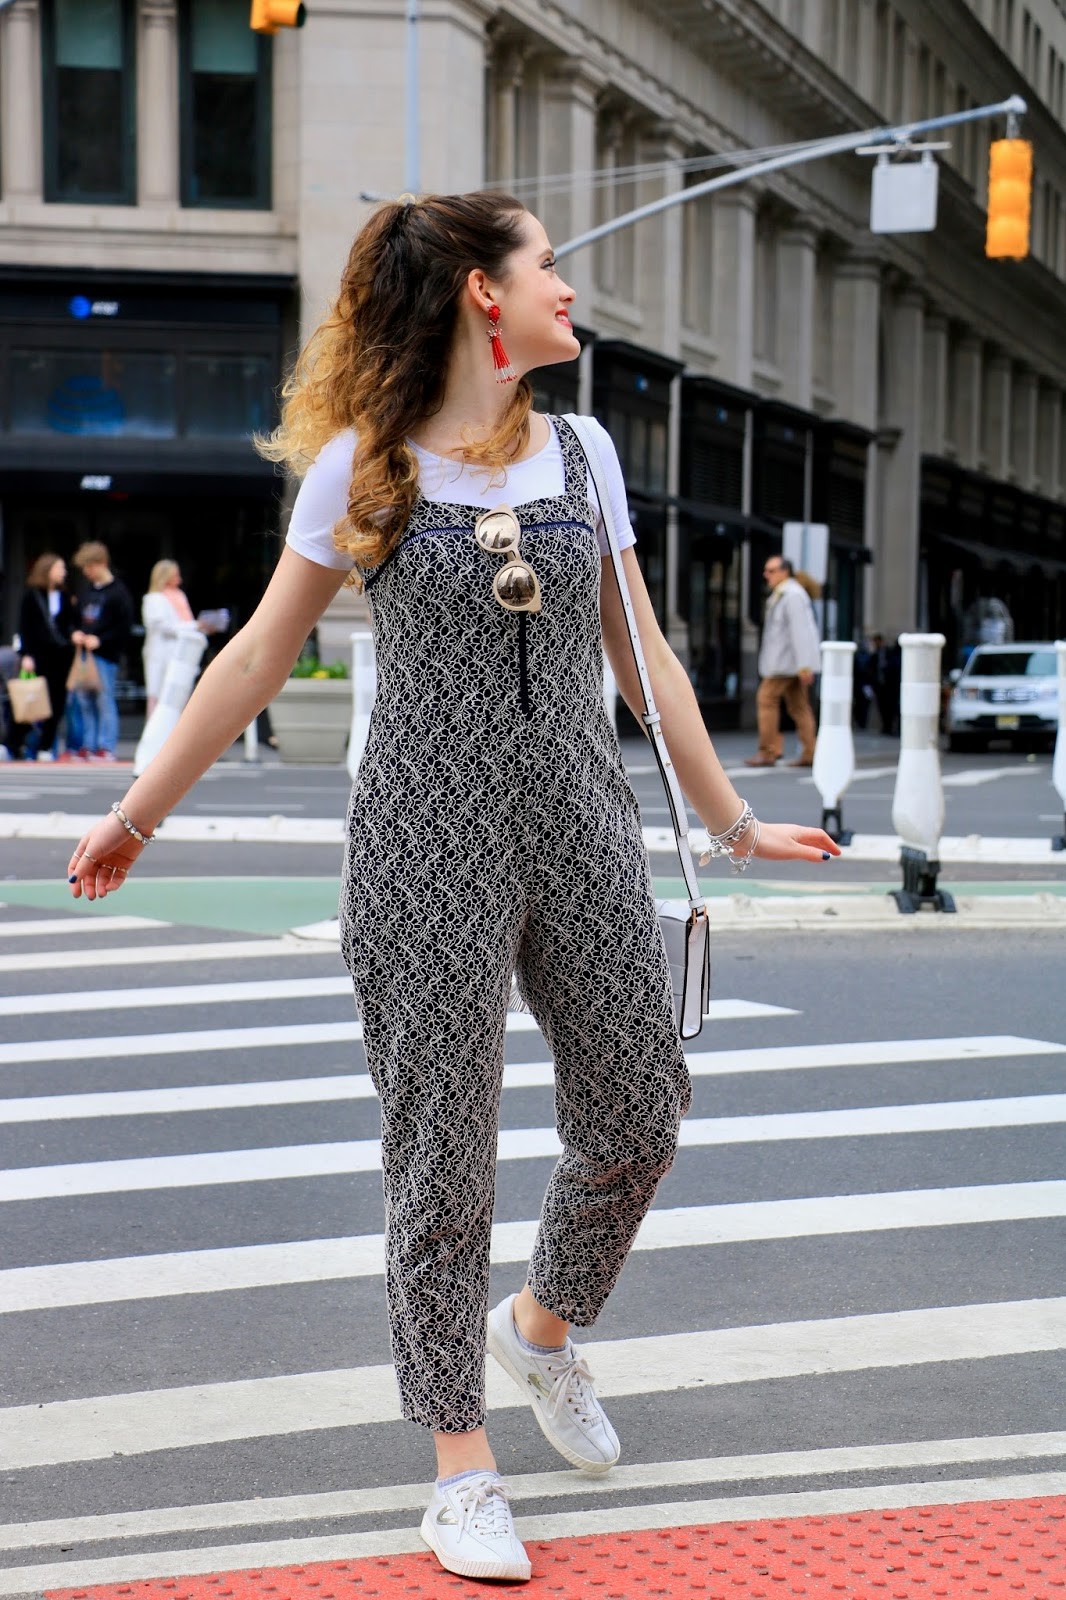 Nyc fashion blogger Kathleen Harper showing how to wear a jumpsuit